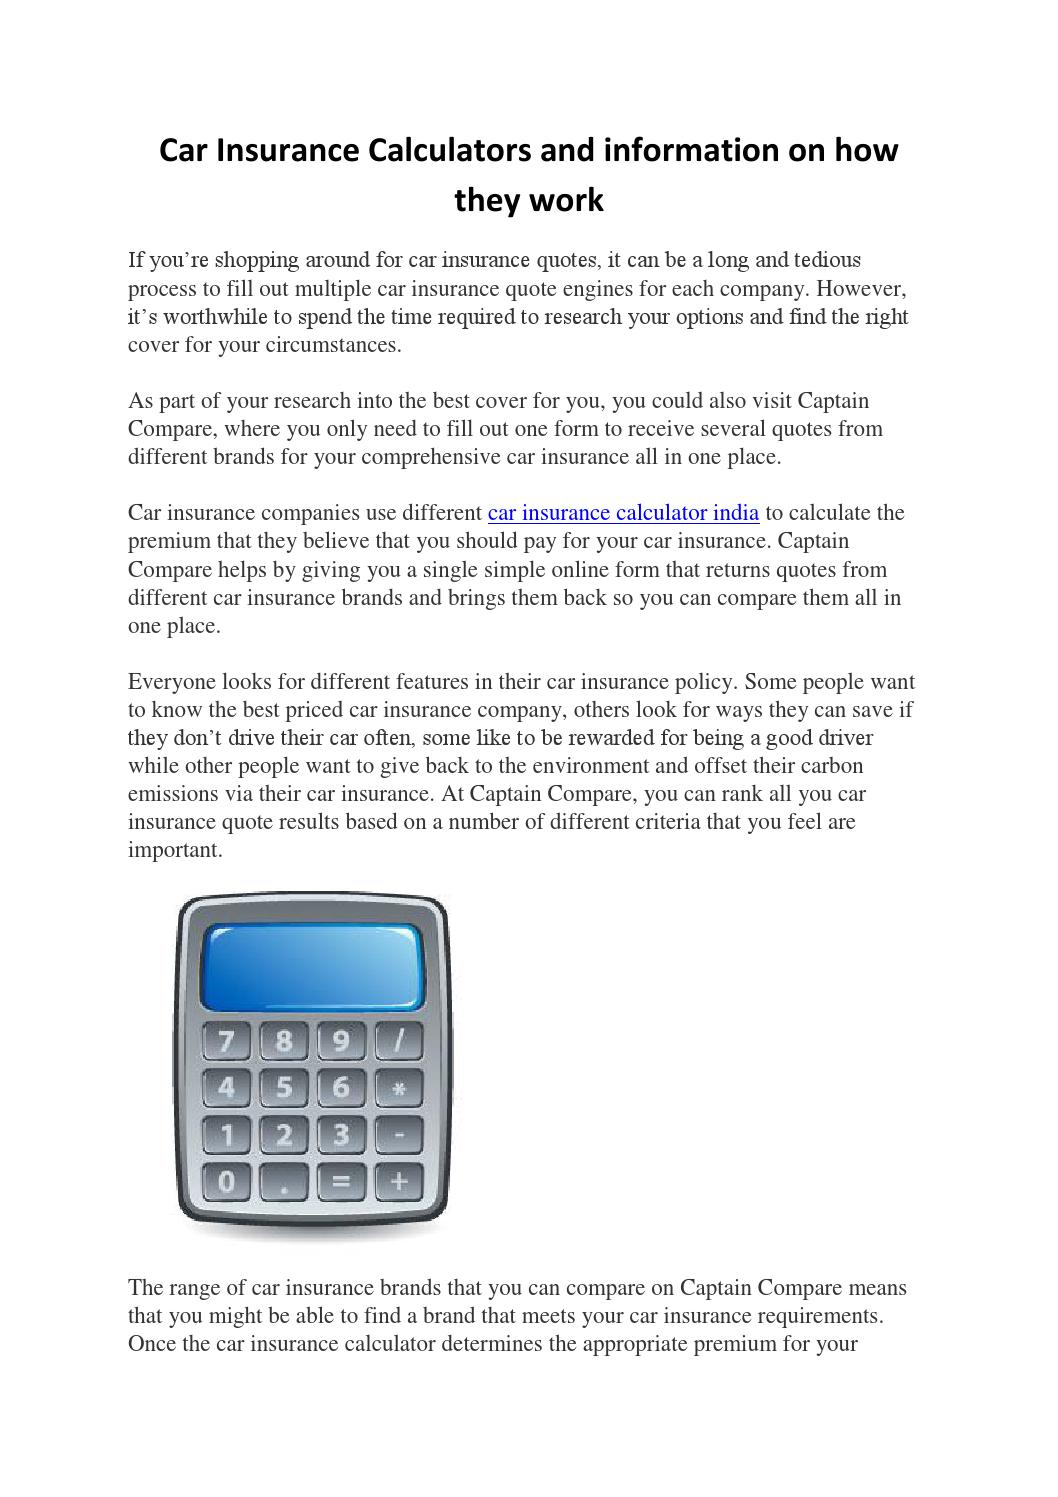 Car Insurance Calculators And Information On How They Work By Sanjay Issuu